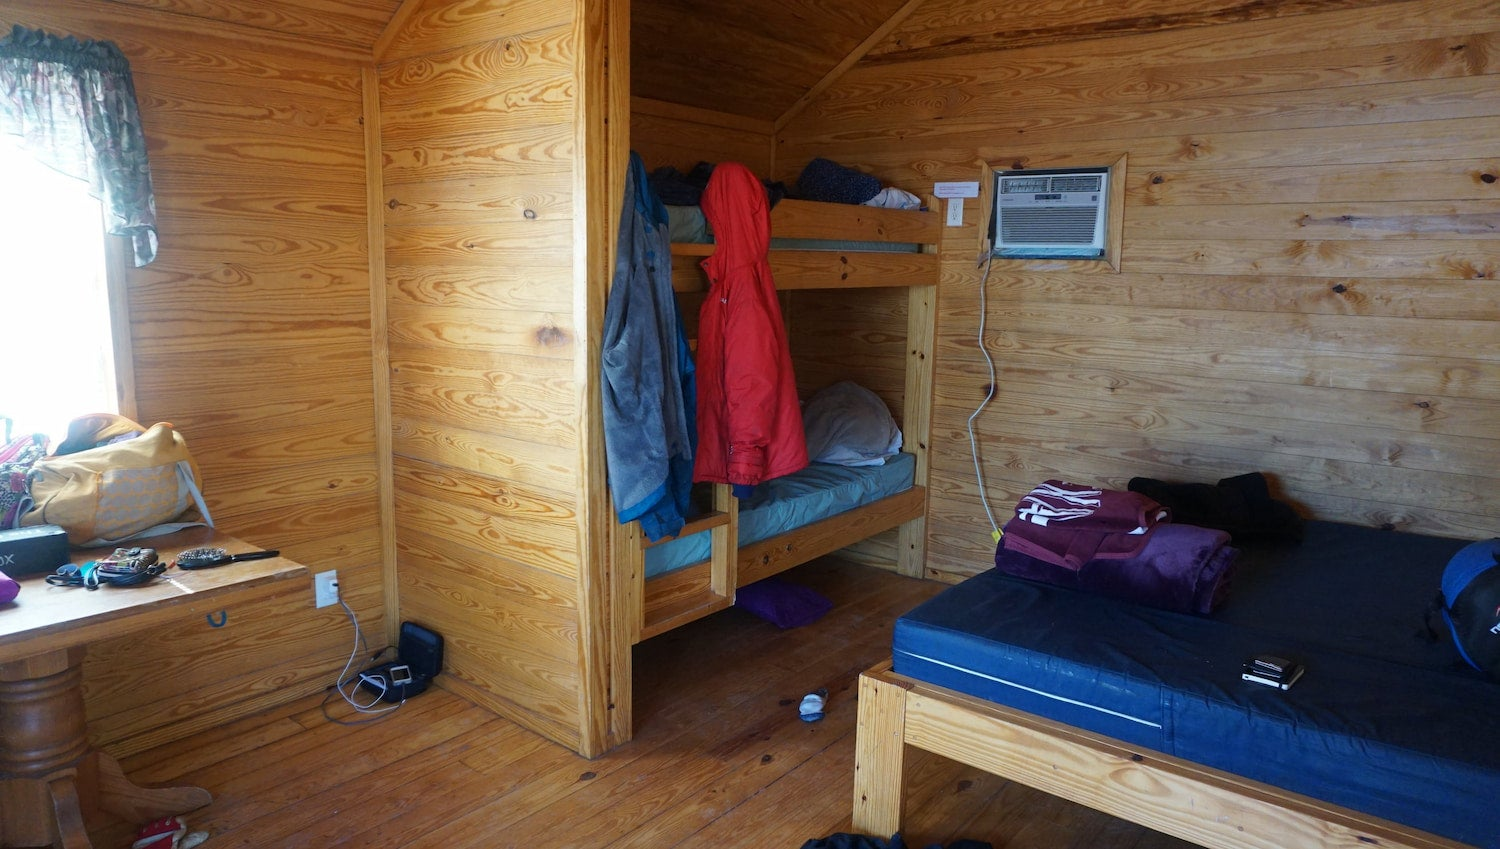 Interior of a camping cabin at the Horsetooth Reservoir with bunk beds.